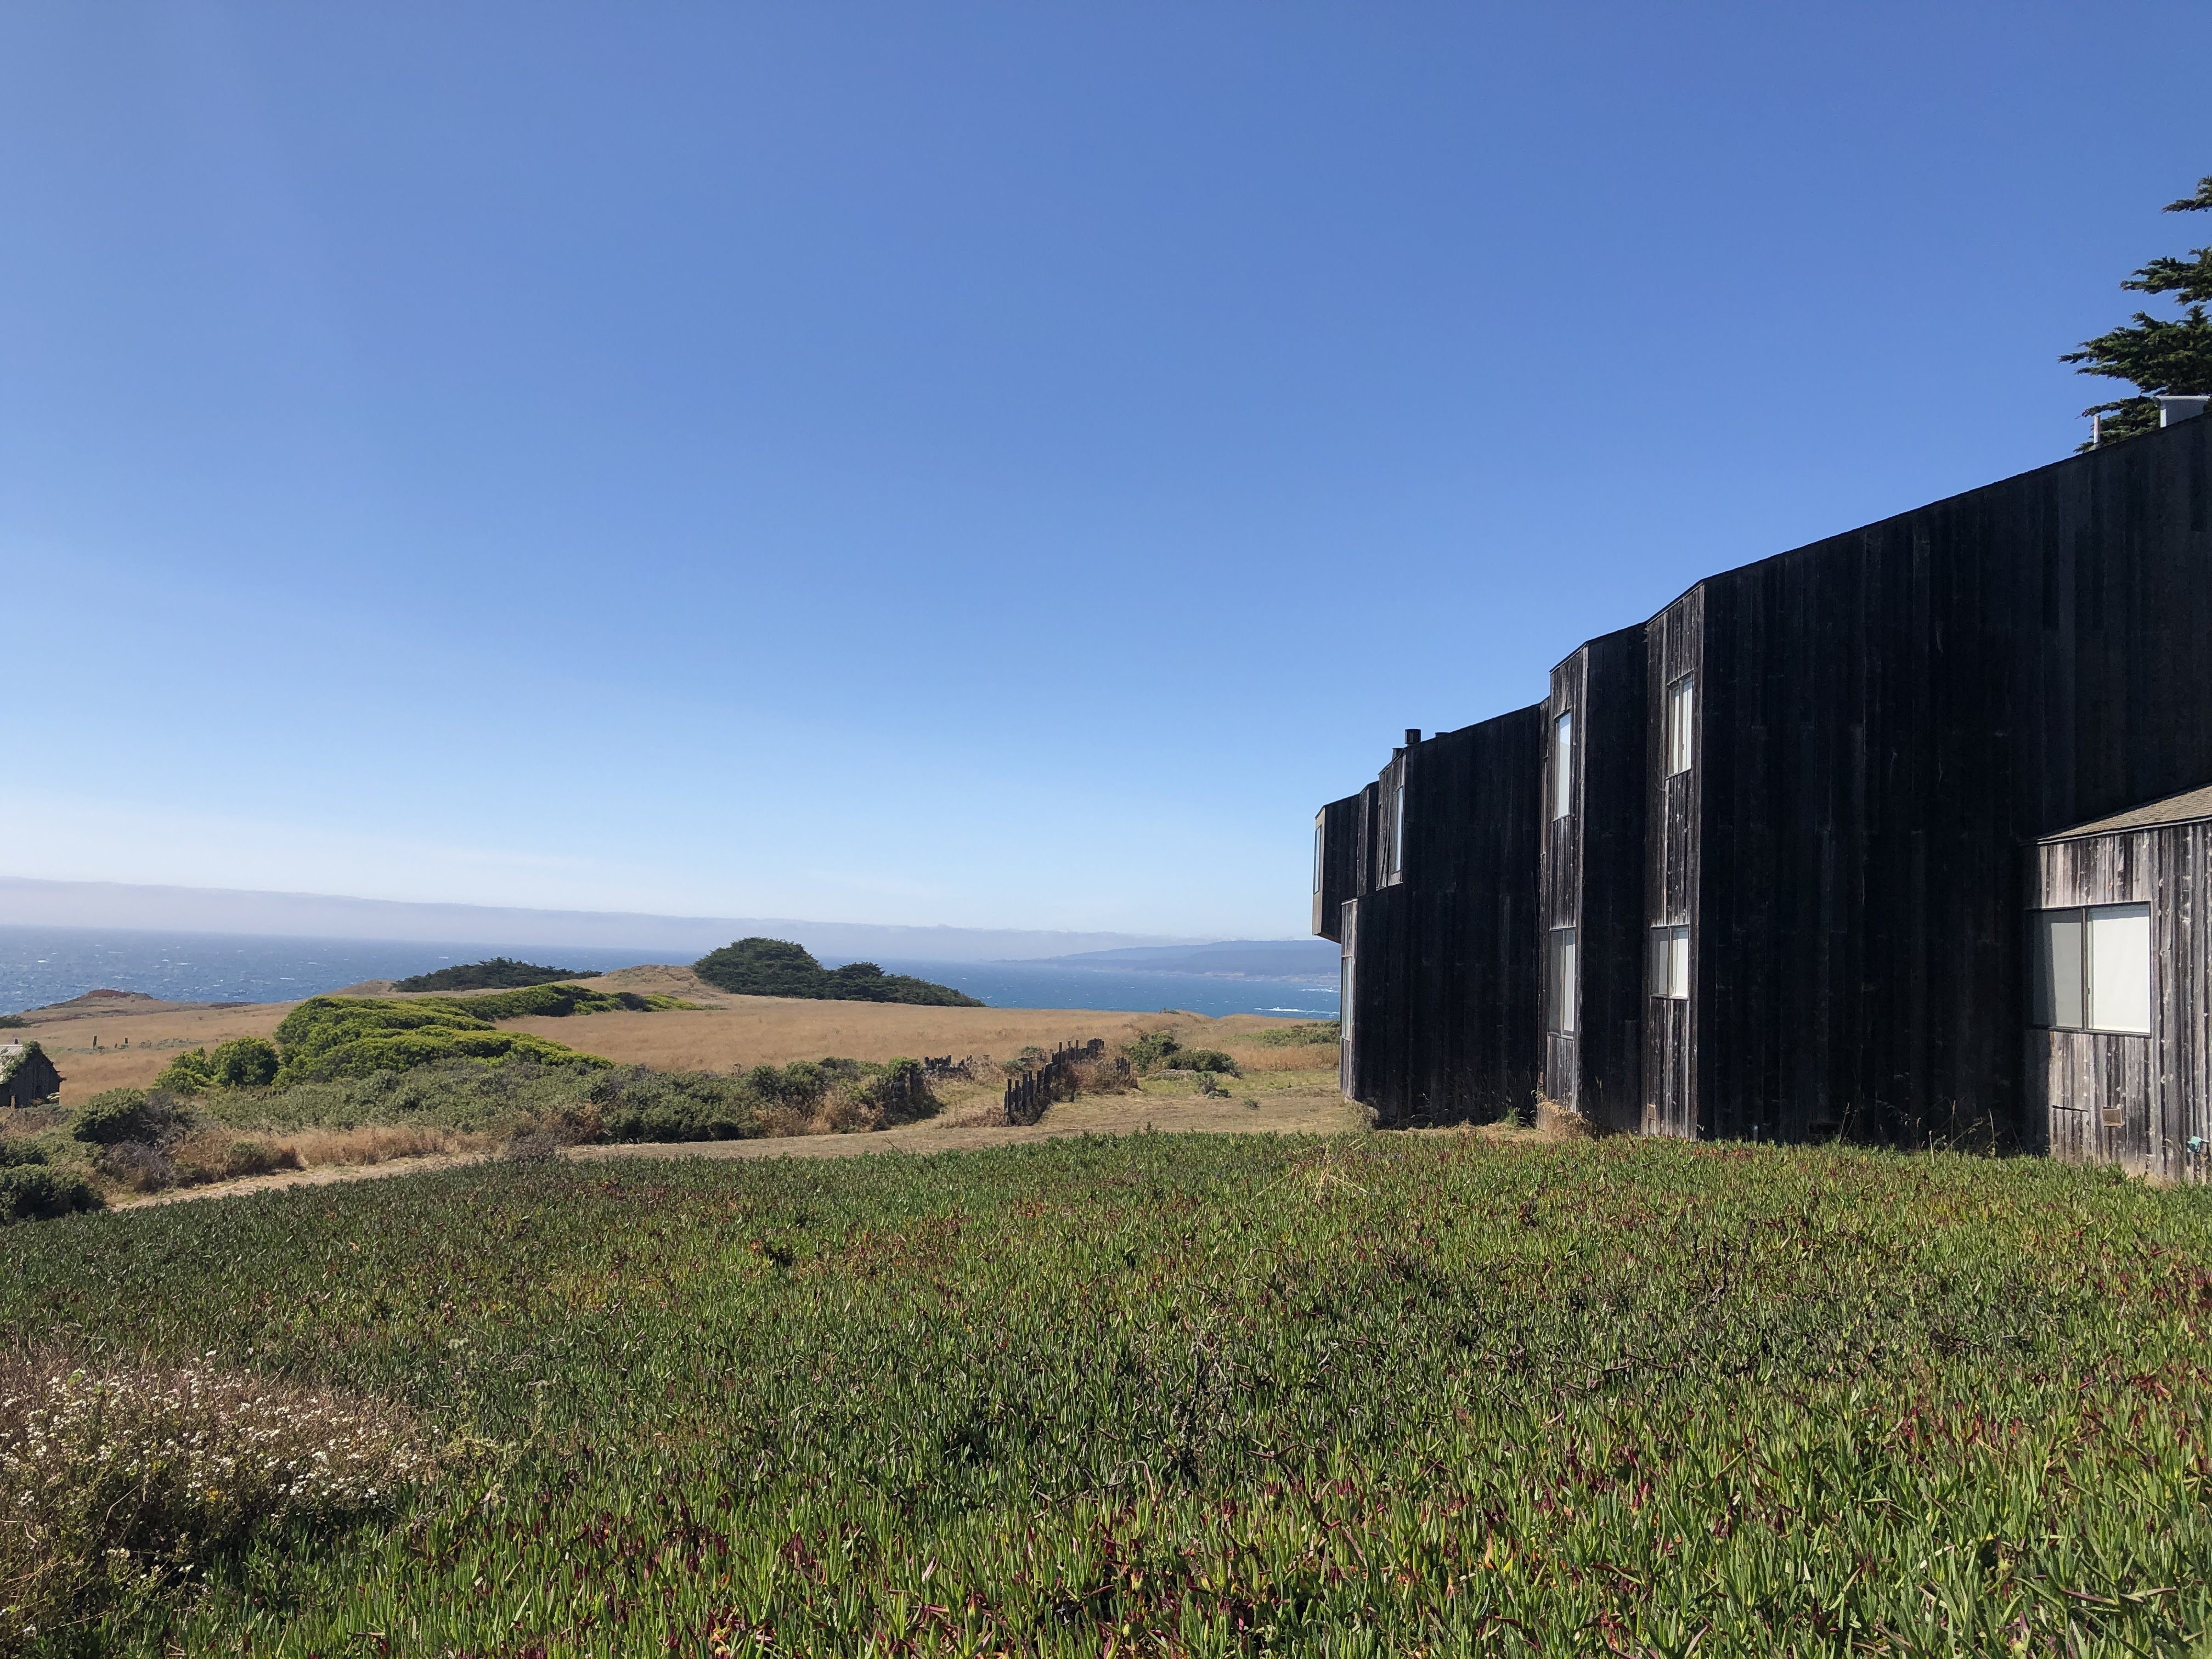 a house in the sea ranch community that overlooks the pacific ocean